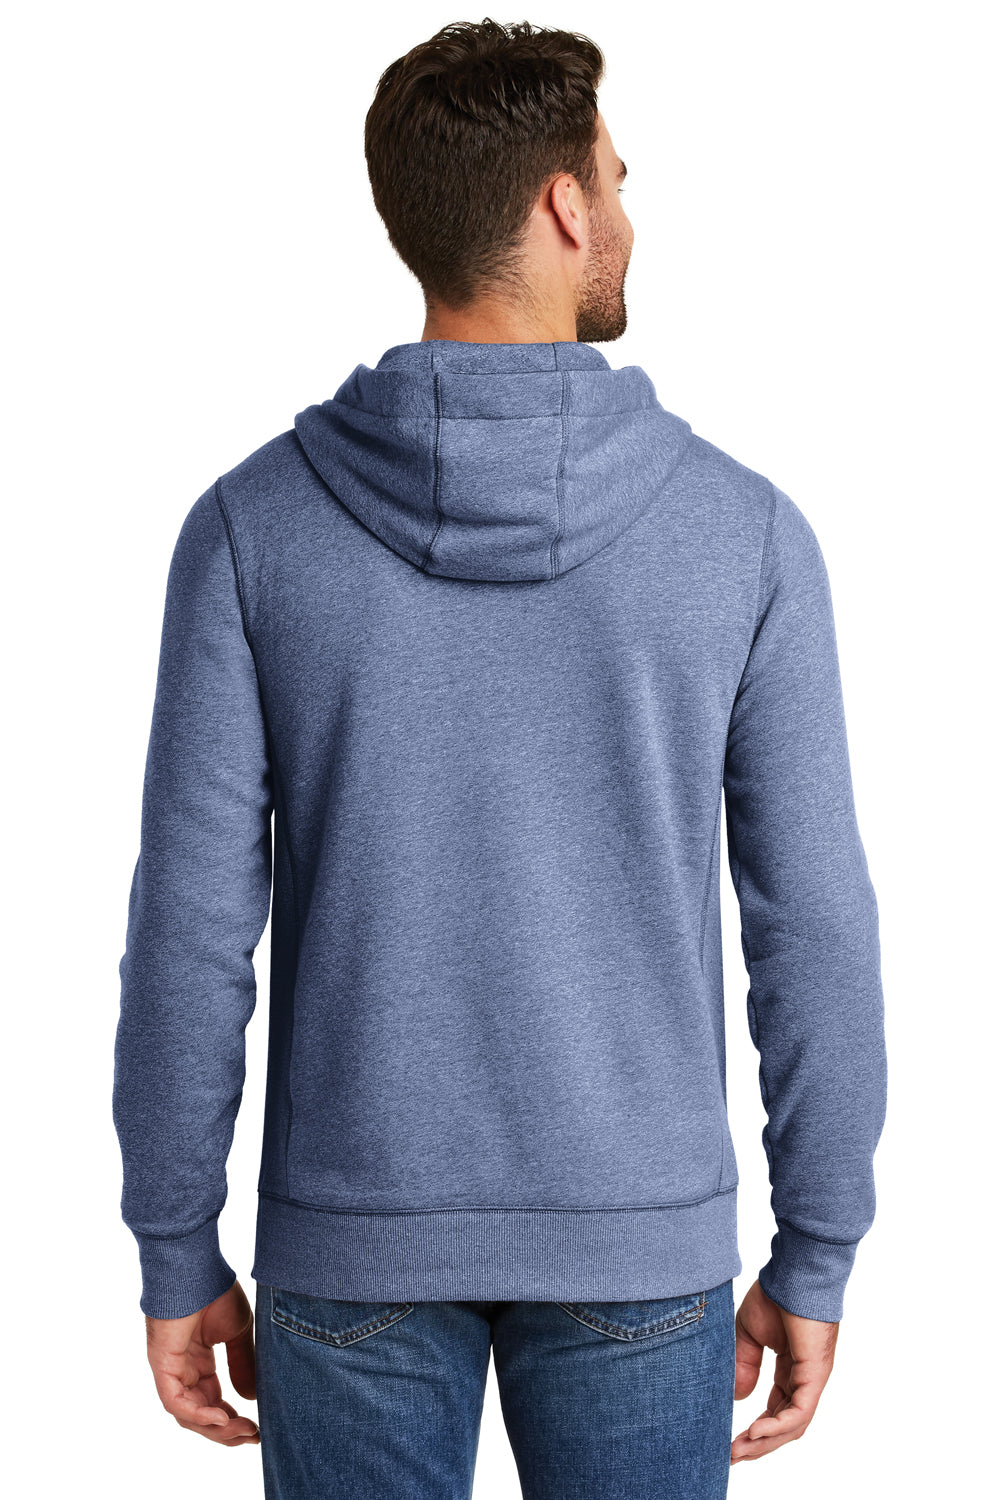 New Era NEA500 Mens Sueded French Terry Hooded Sweatshirt Hoodie Dark Royal Blue Twist Back